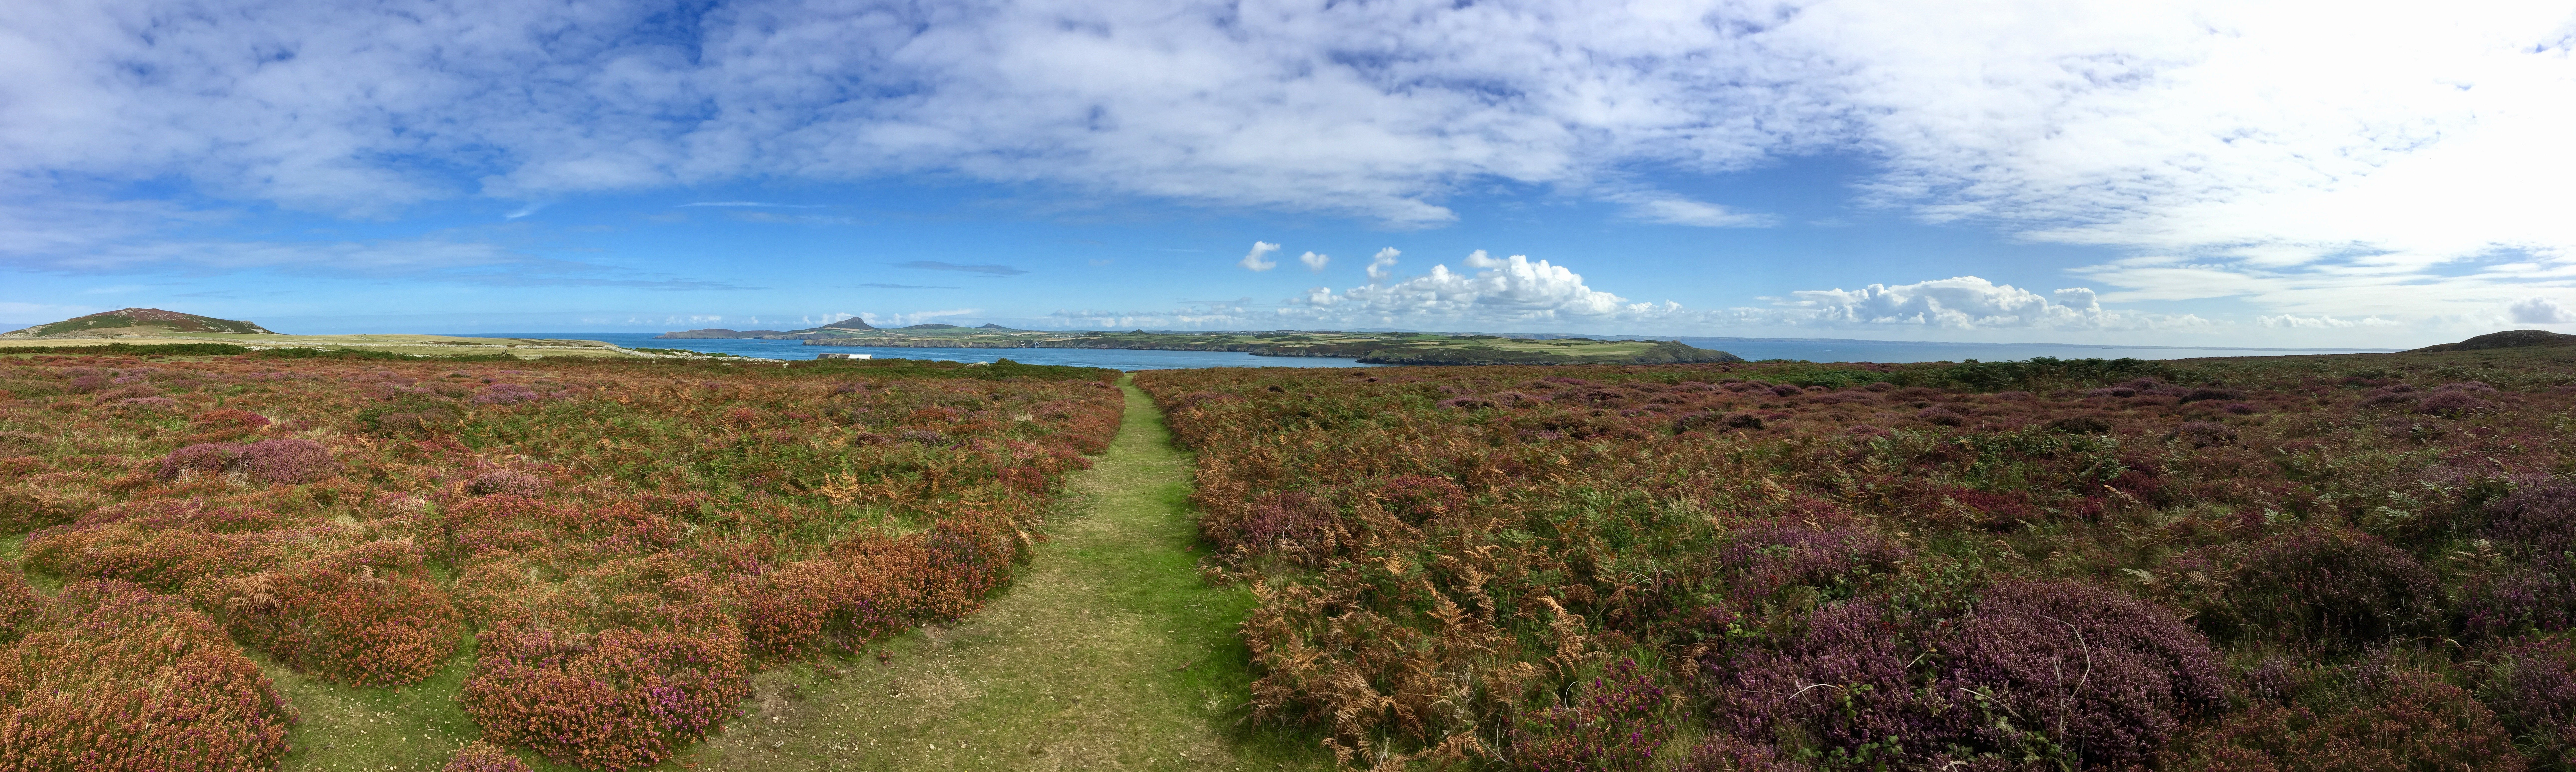 Panoramic view from Ramsey Island back across to the mainland